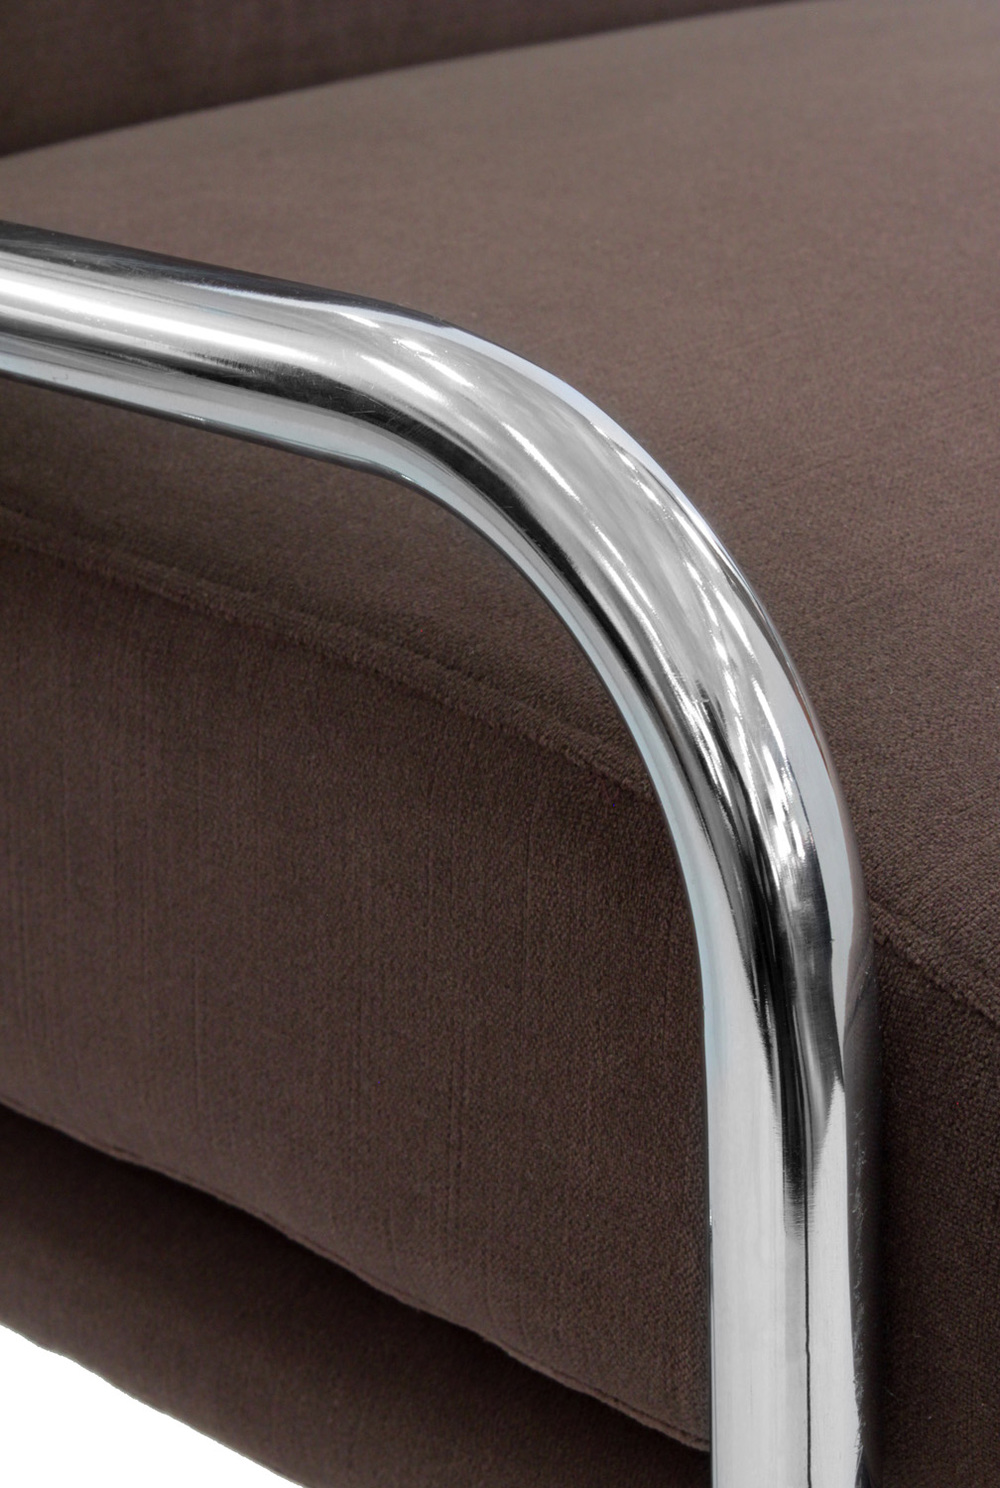 Baughman 85 thk chrome frame loungechairs136 detail5 hires.jpg